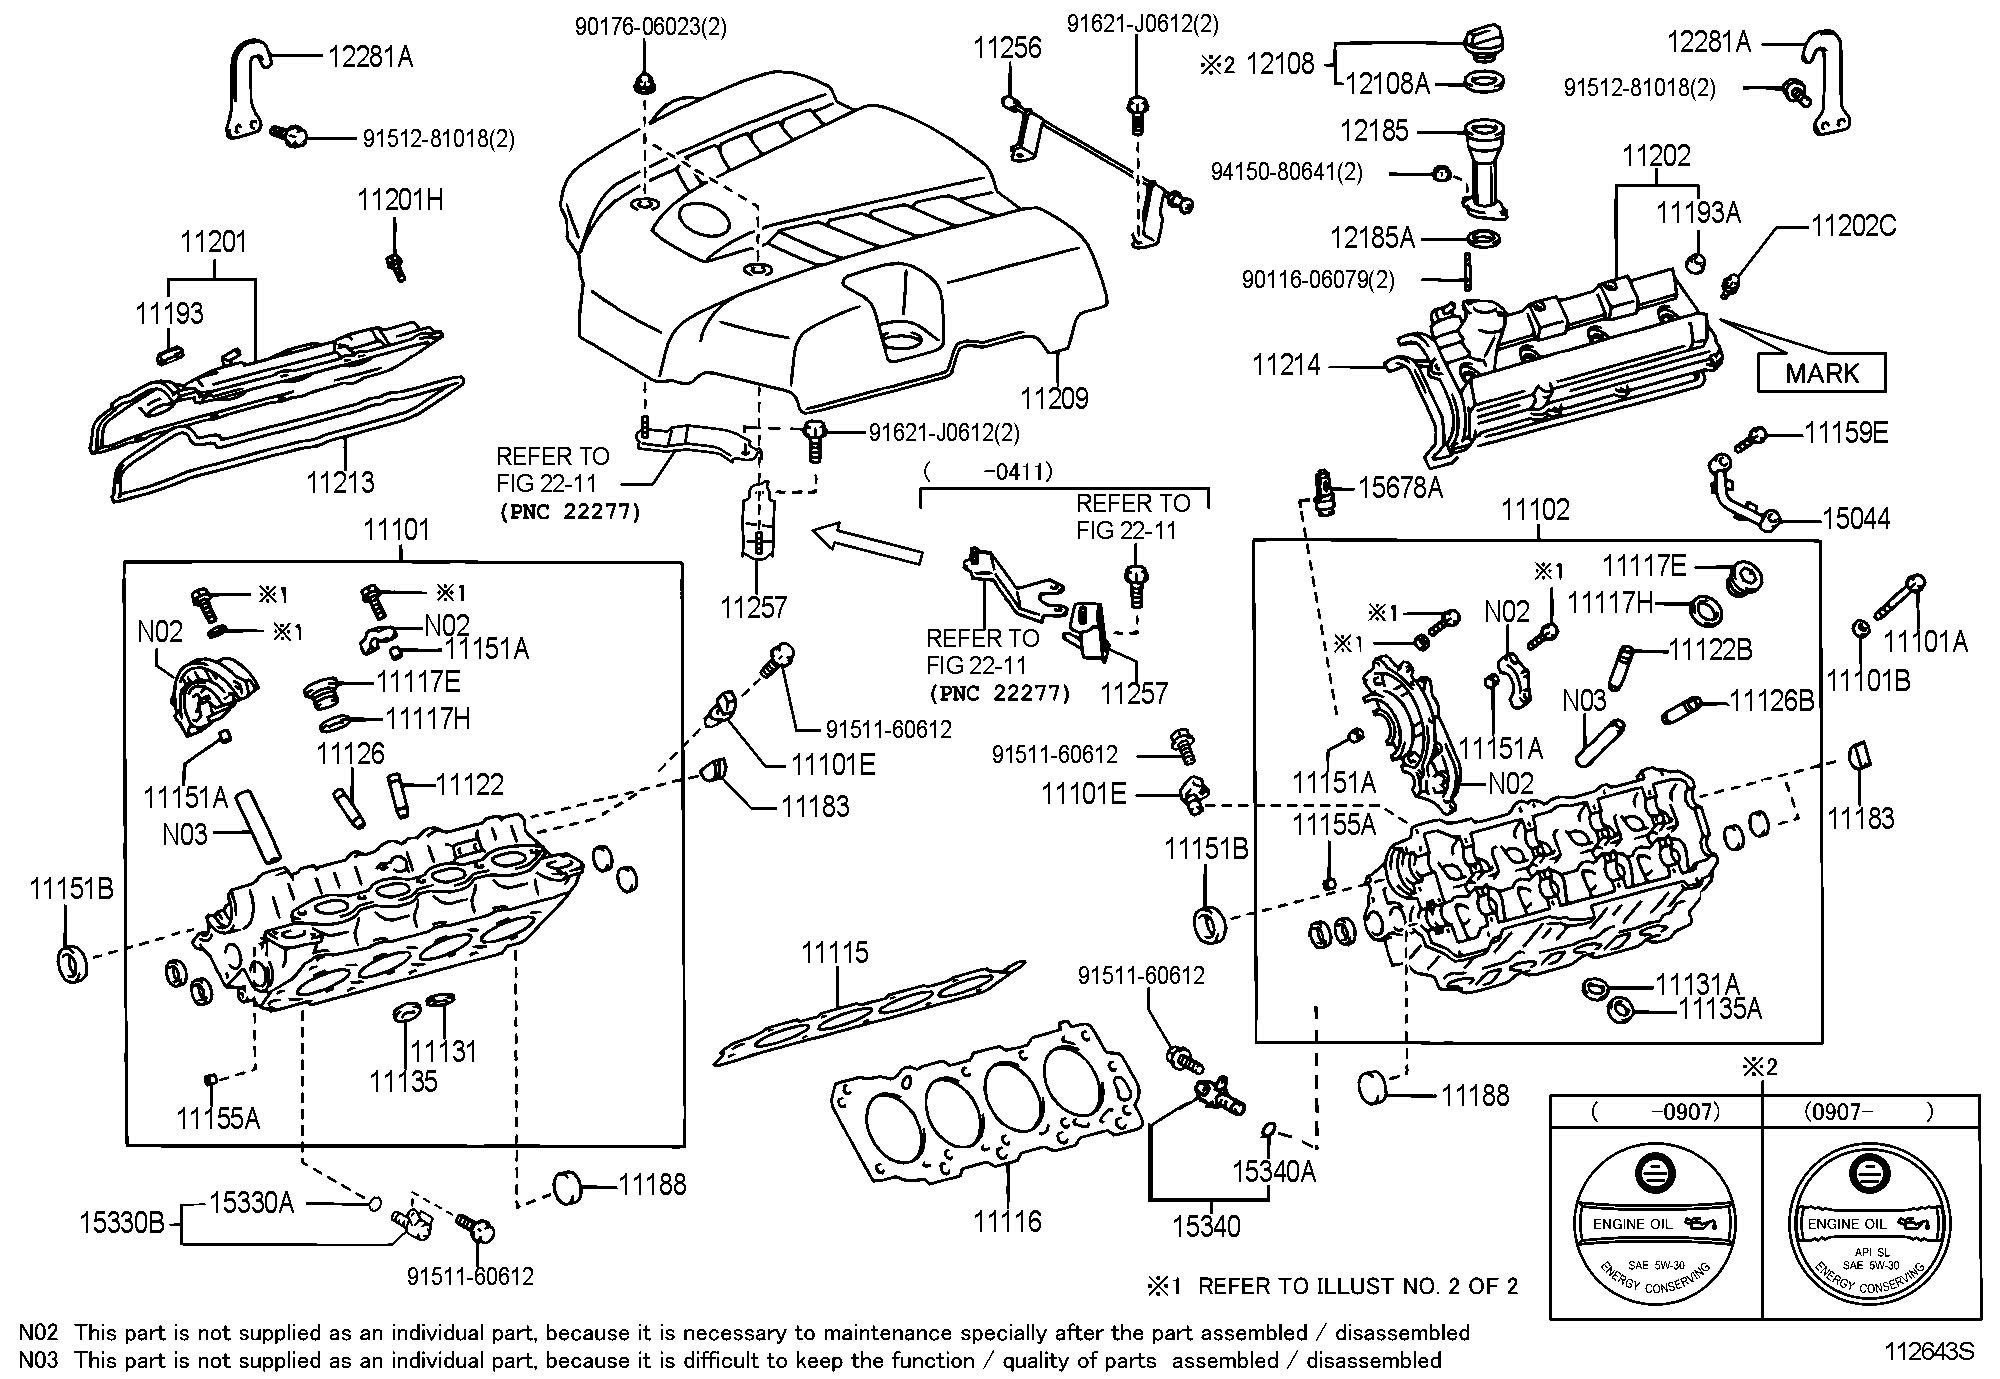 2005 Lexus Rx330 Fuse Box Diagram • Wiring Diagram For Free